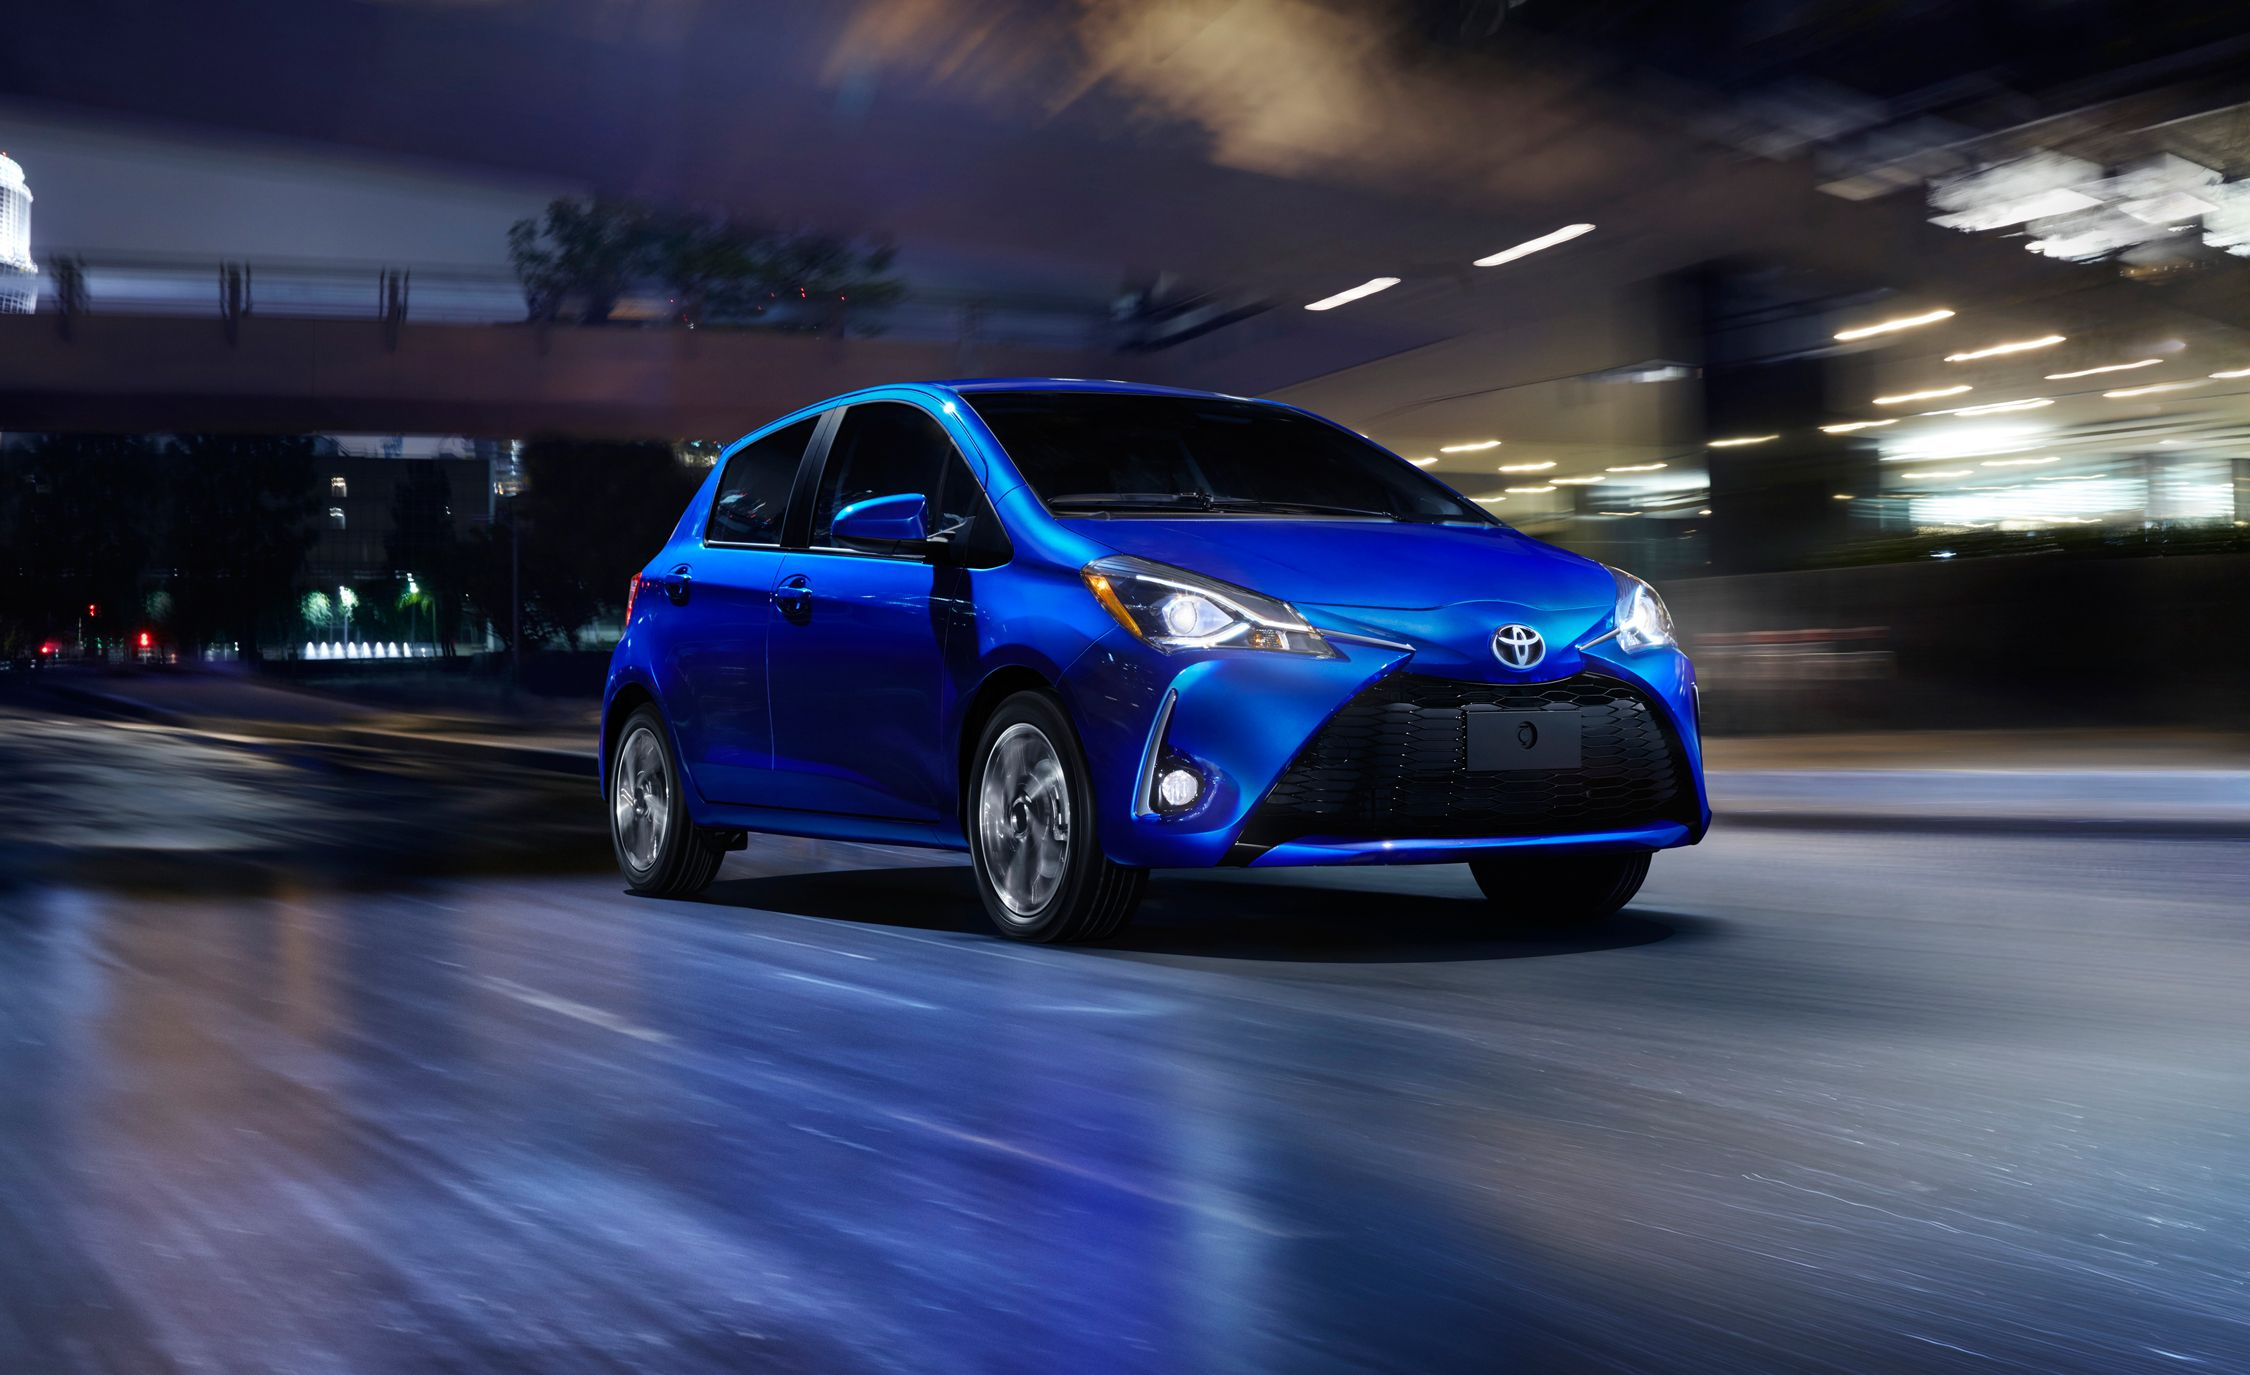 2018 toyota models usa. 2018 toyota models usa e